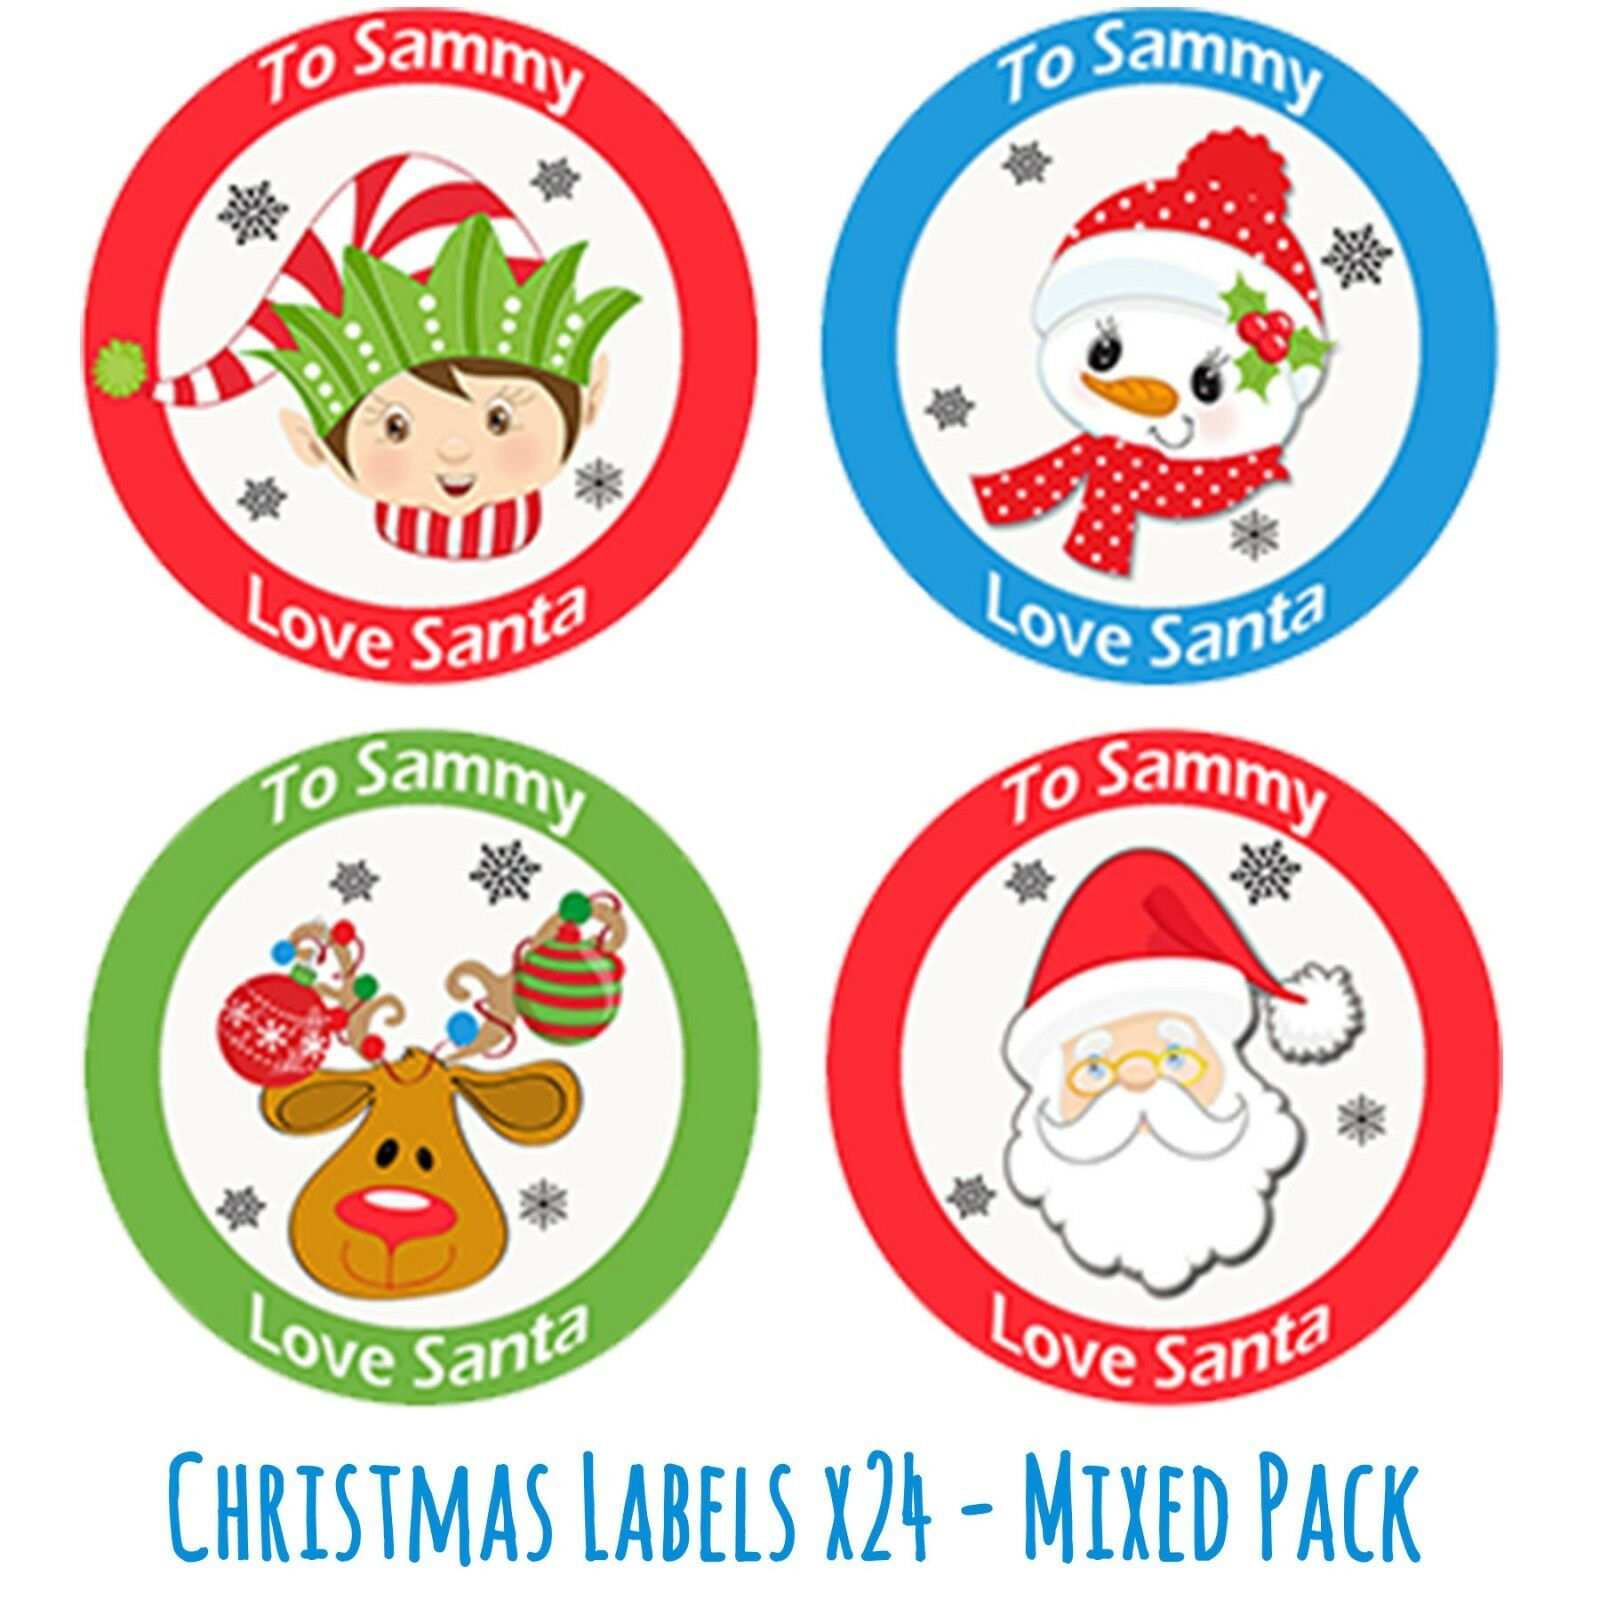 Christmas Stickers.Details About 24 Personalised Christmas Stickers Gift Tag Labels Present Delivery From Santa